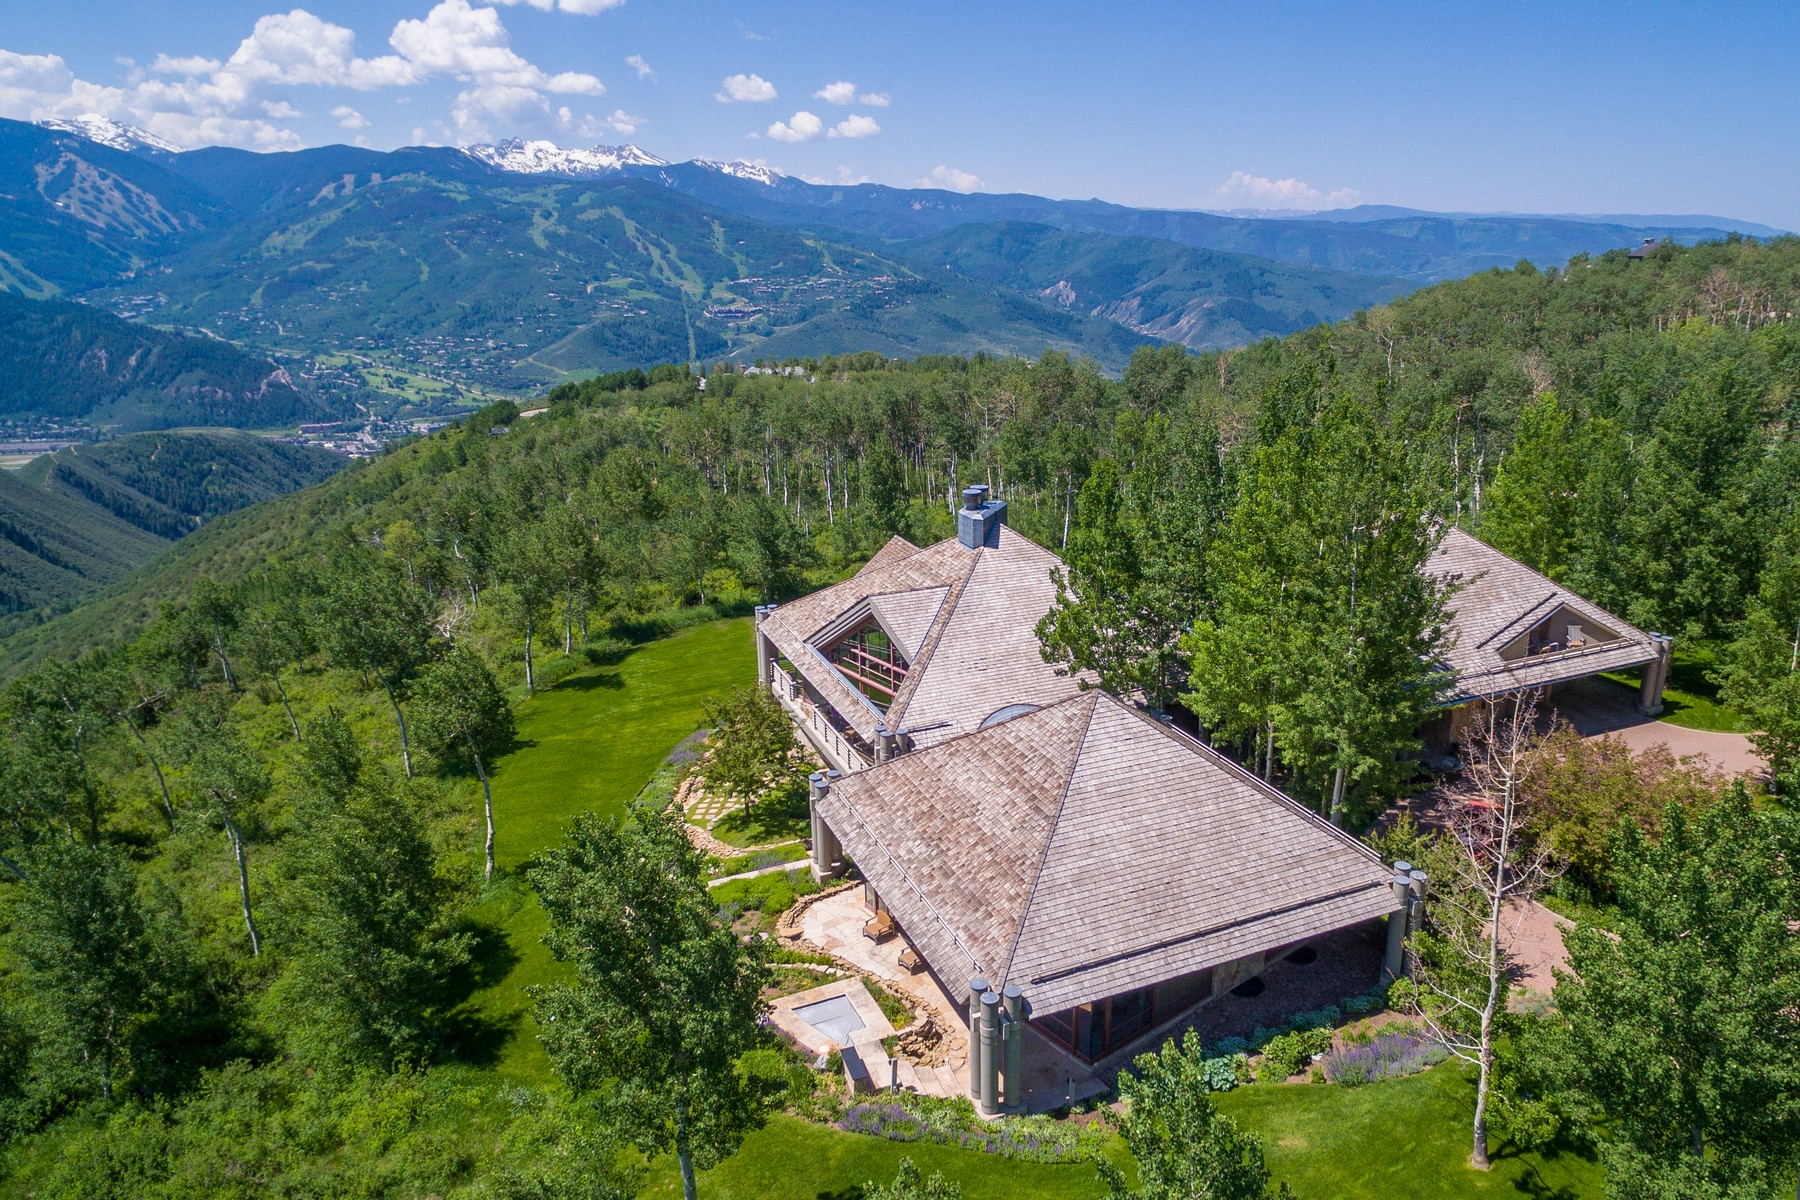 Single Family Home for Active at 56 Rose Crown 56 Rose Crown Beaver Creek, Colorado 81620 United States